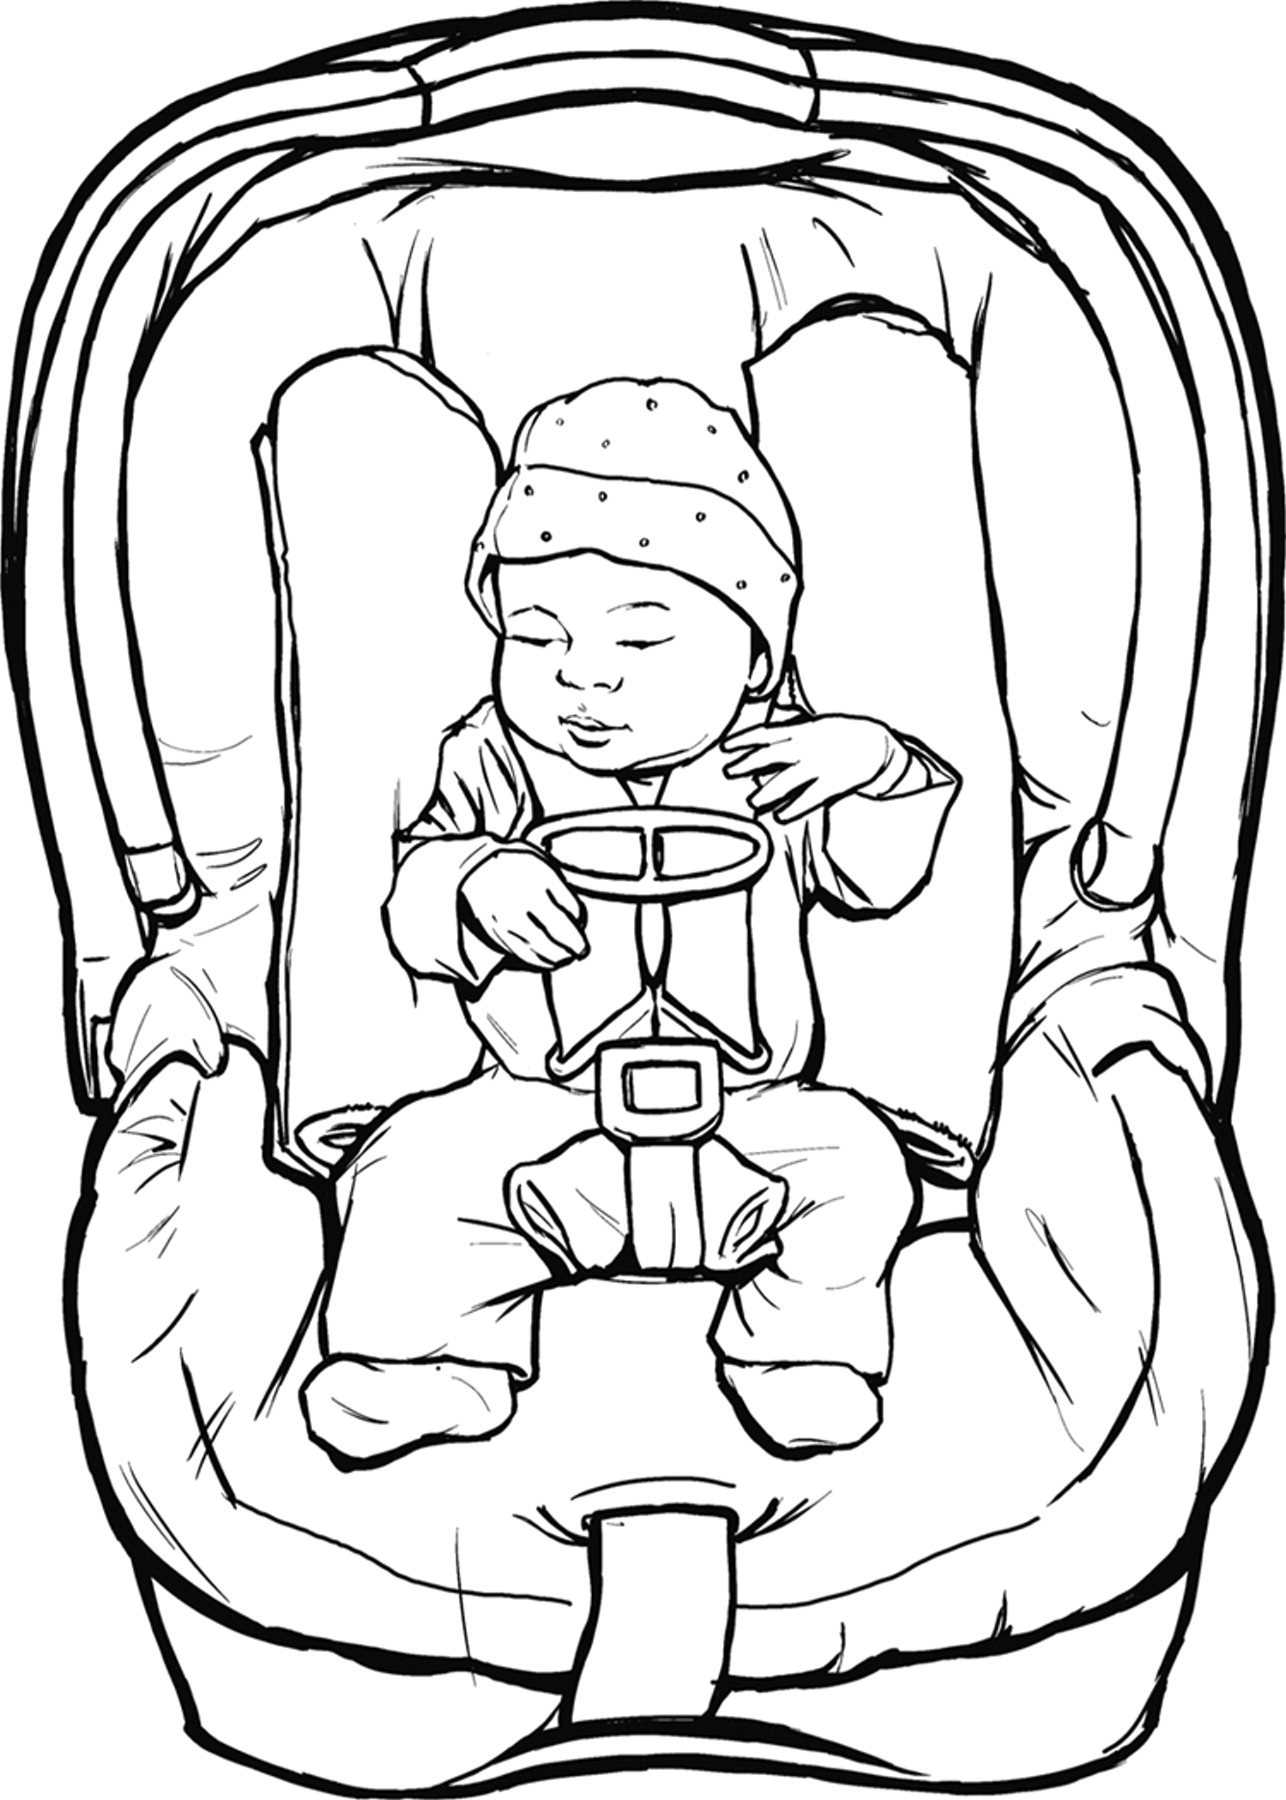 Infant clipart baby drawing. Newborn at getdrawings com